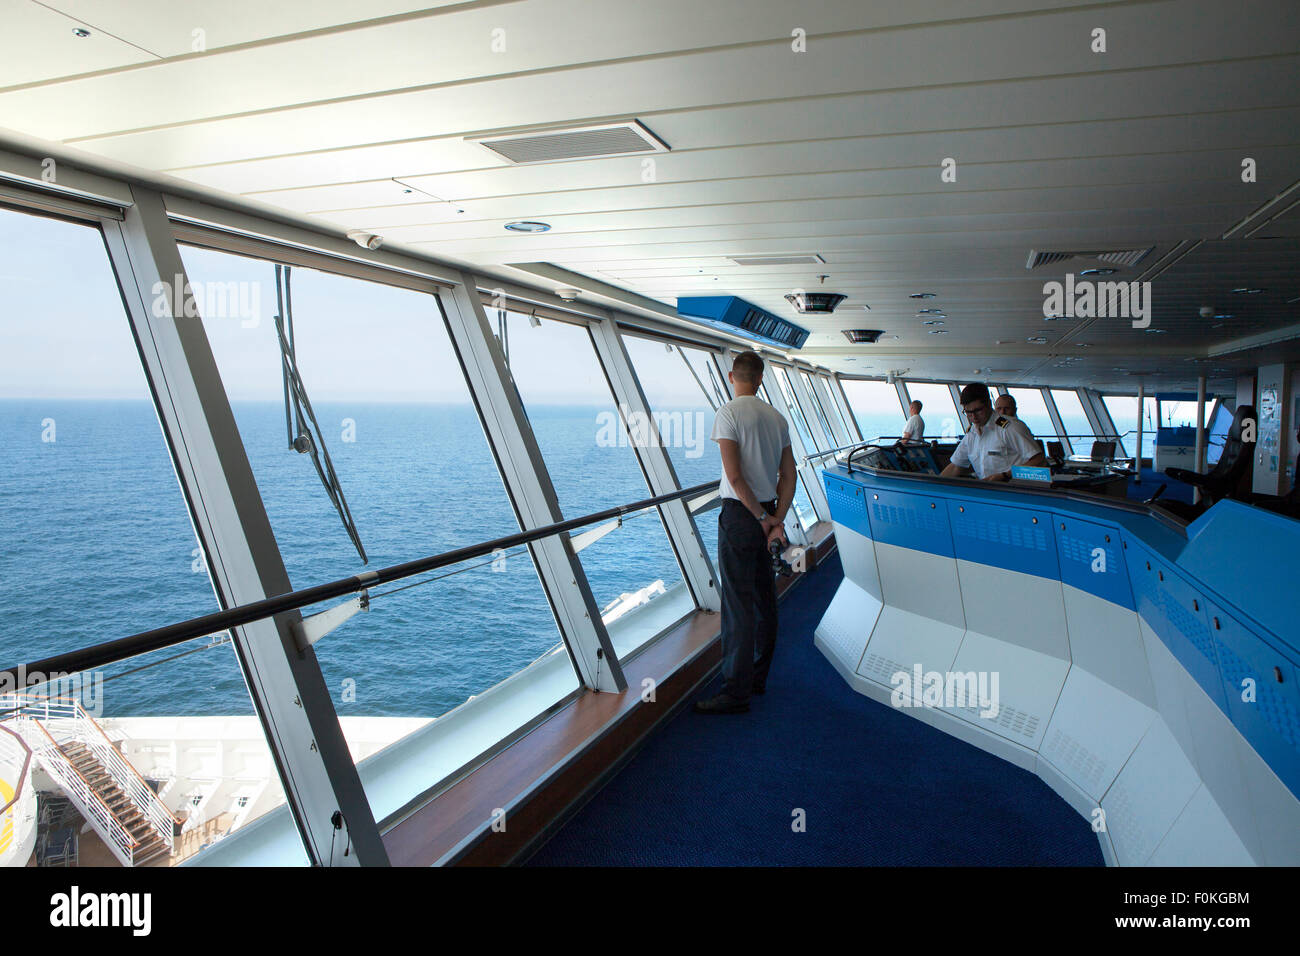 Inside A Modern Cruise Ship Bridge Navigating In The Ocean The - Pictures of the inside of a cruise ship